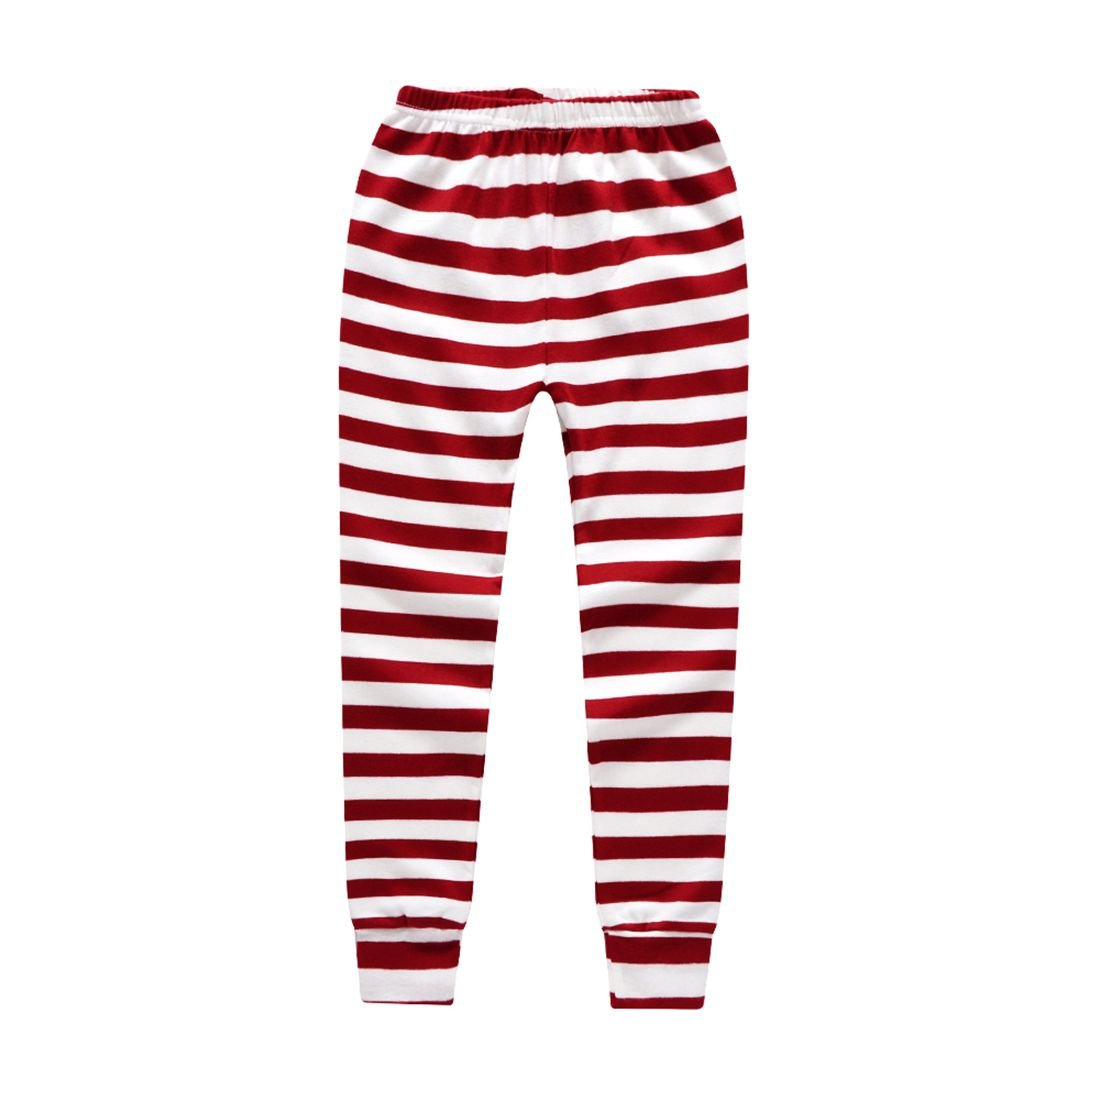 Boys Pajamas Fashion Long Sleeves Toddler Santa Claus Kids Pjs Sleepwear 2 Piece